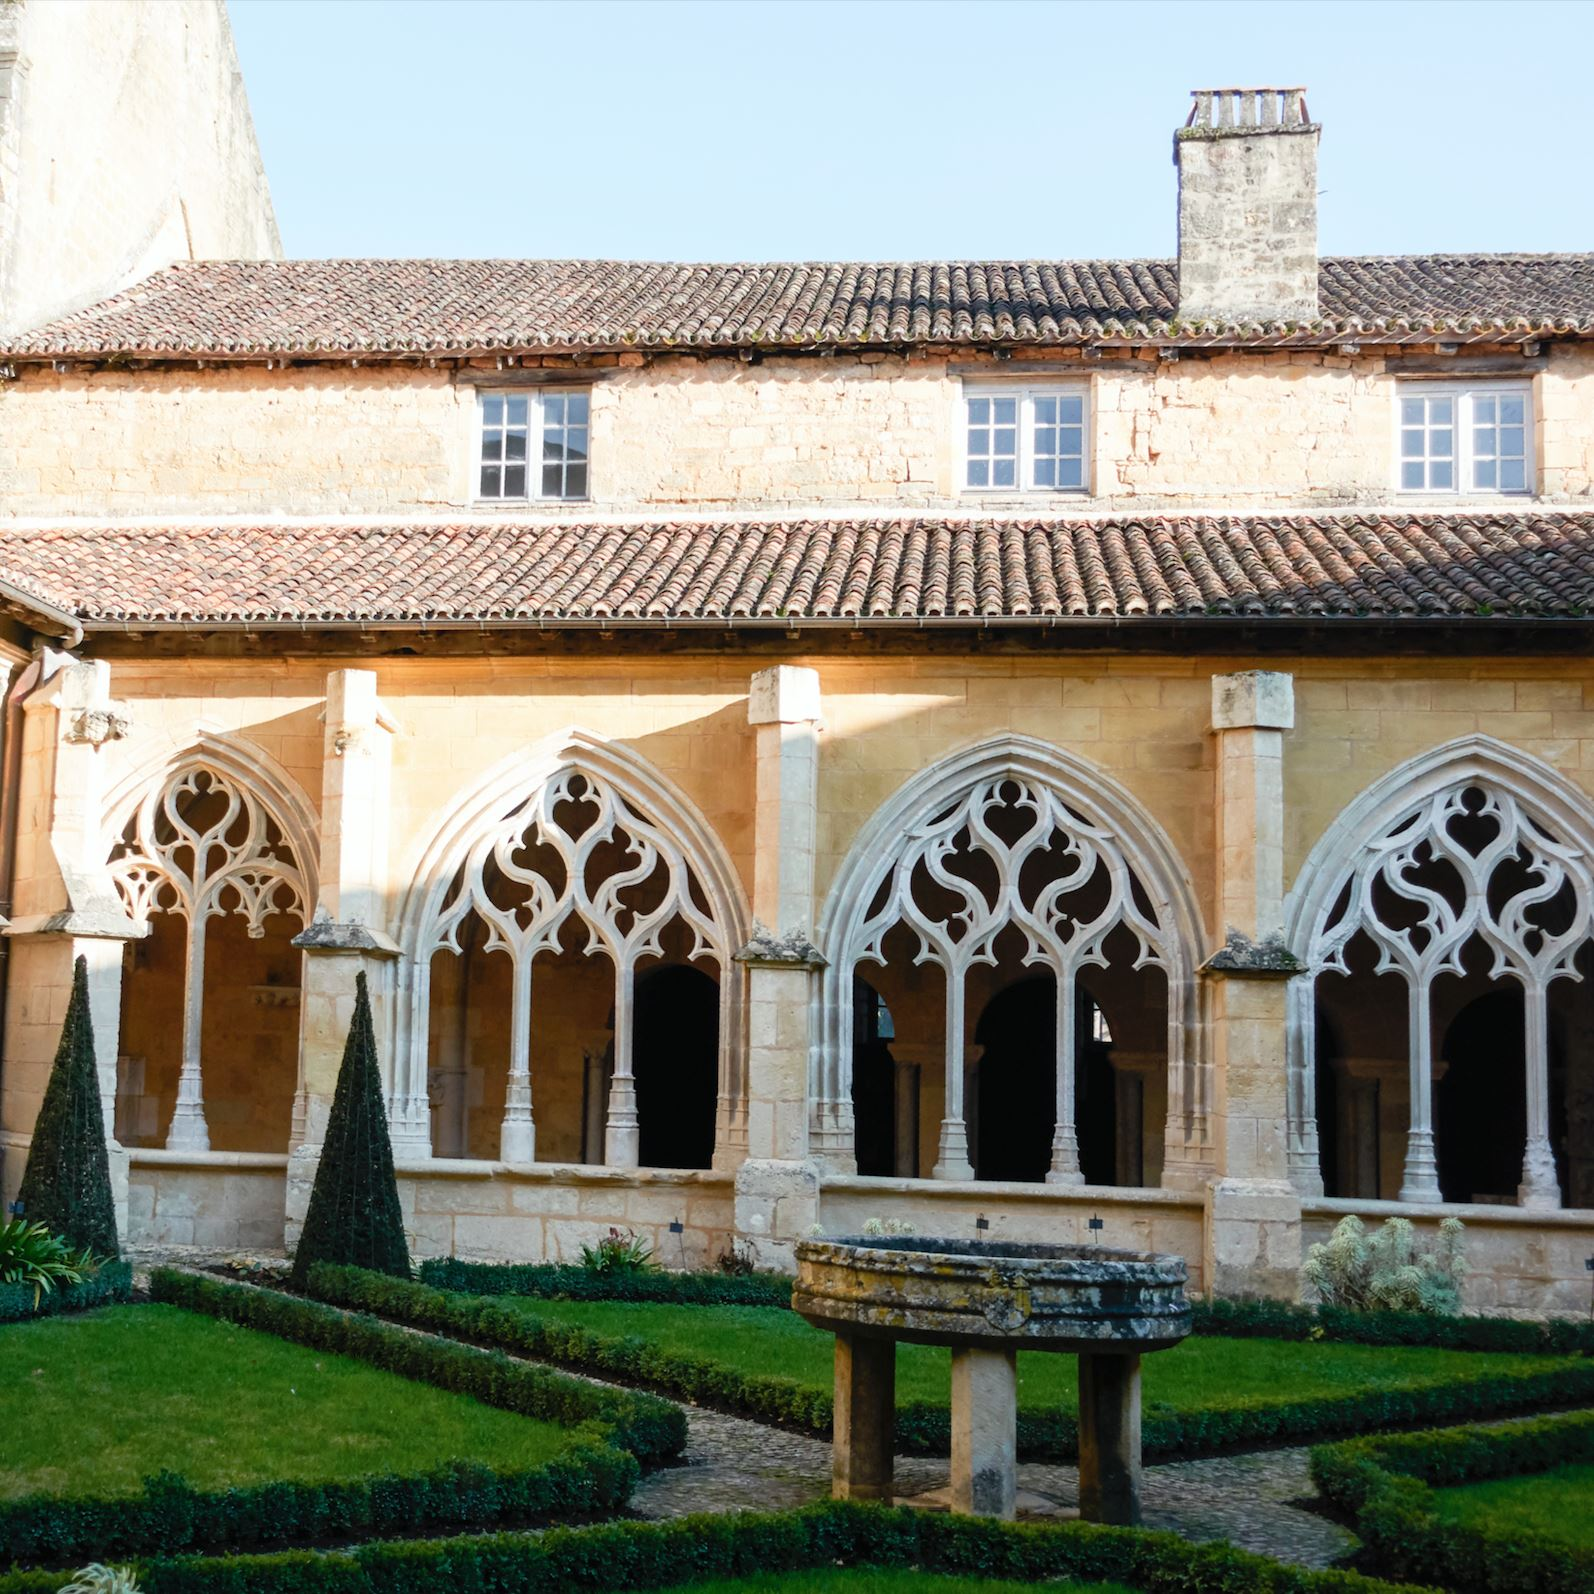 Cloister of Cadouin